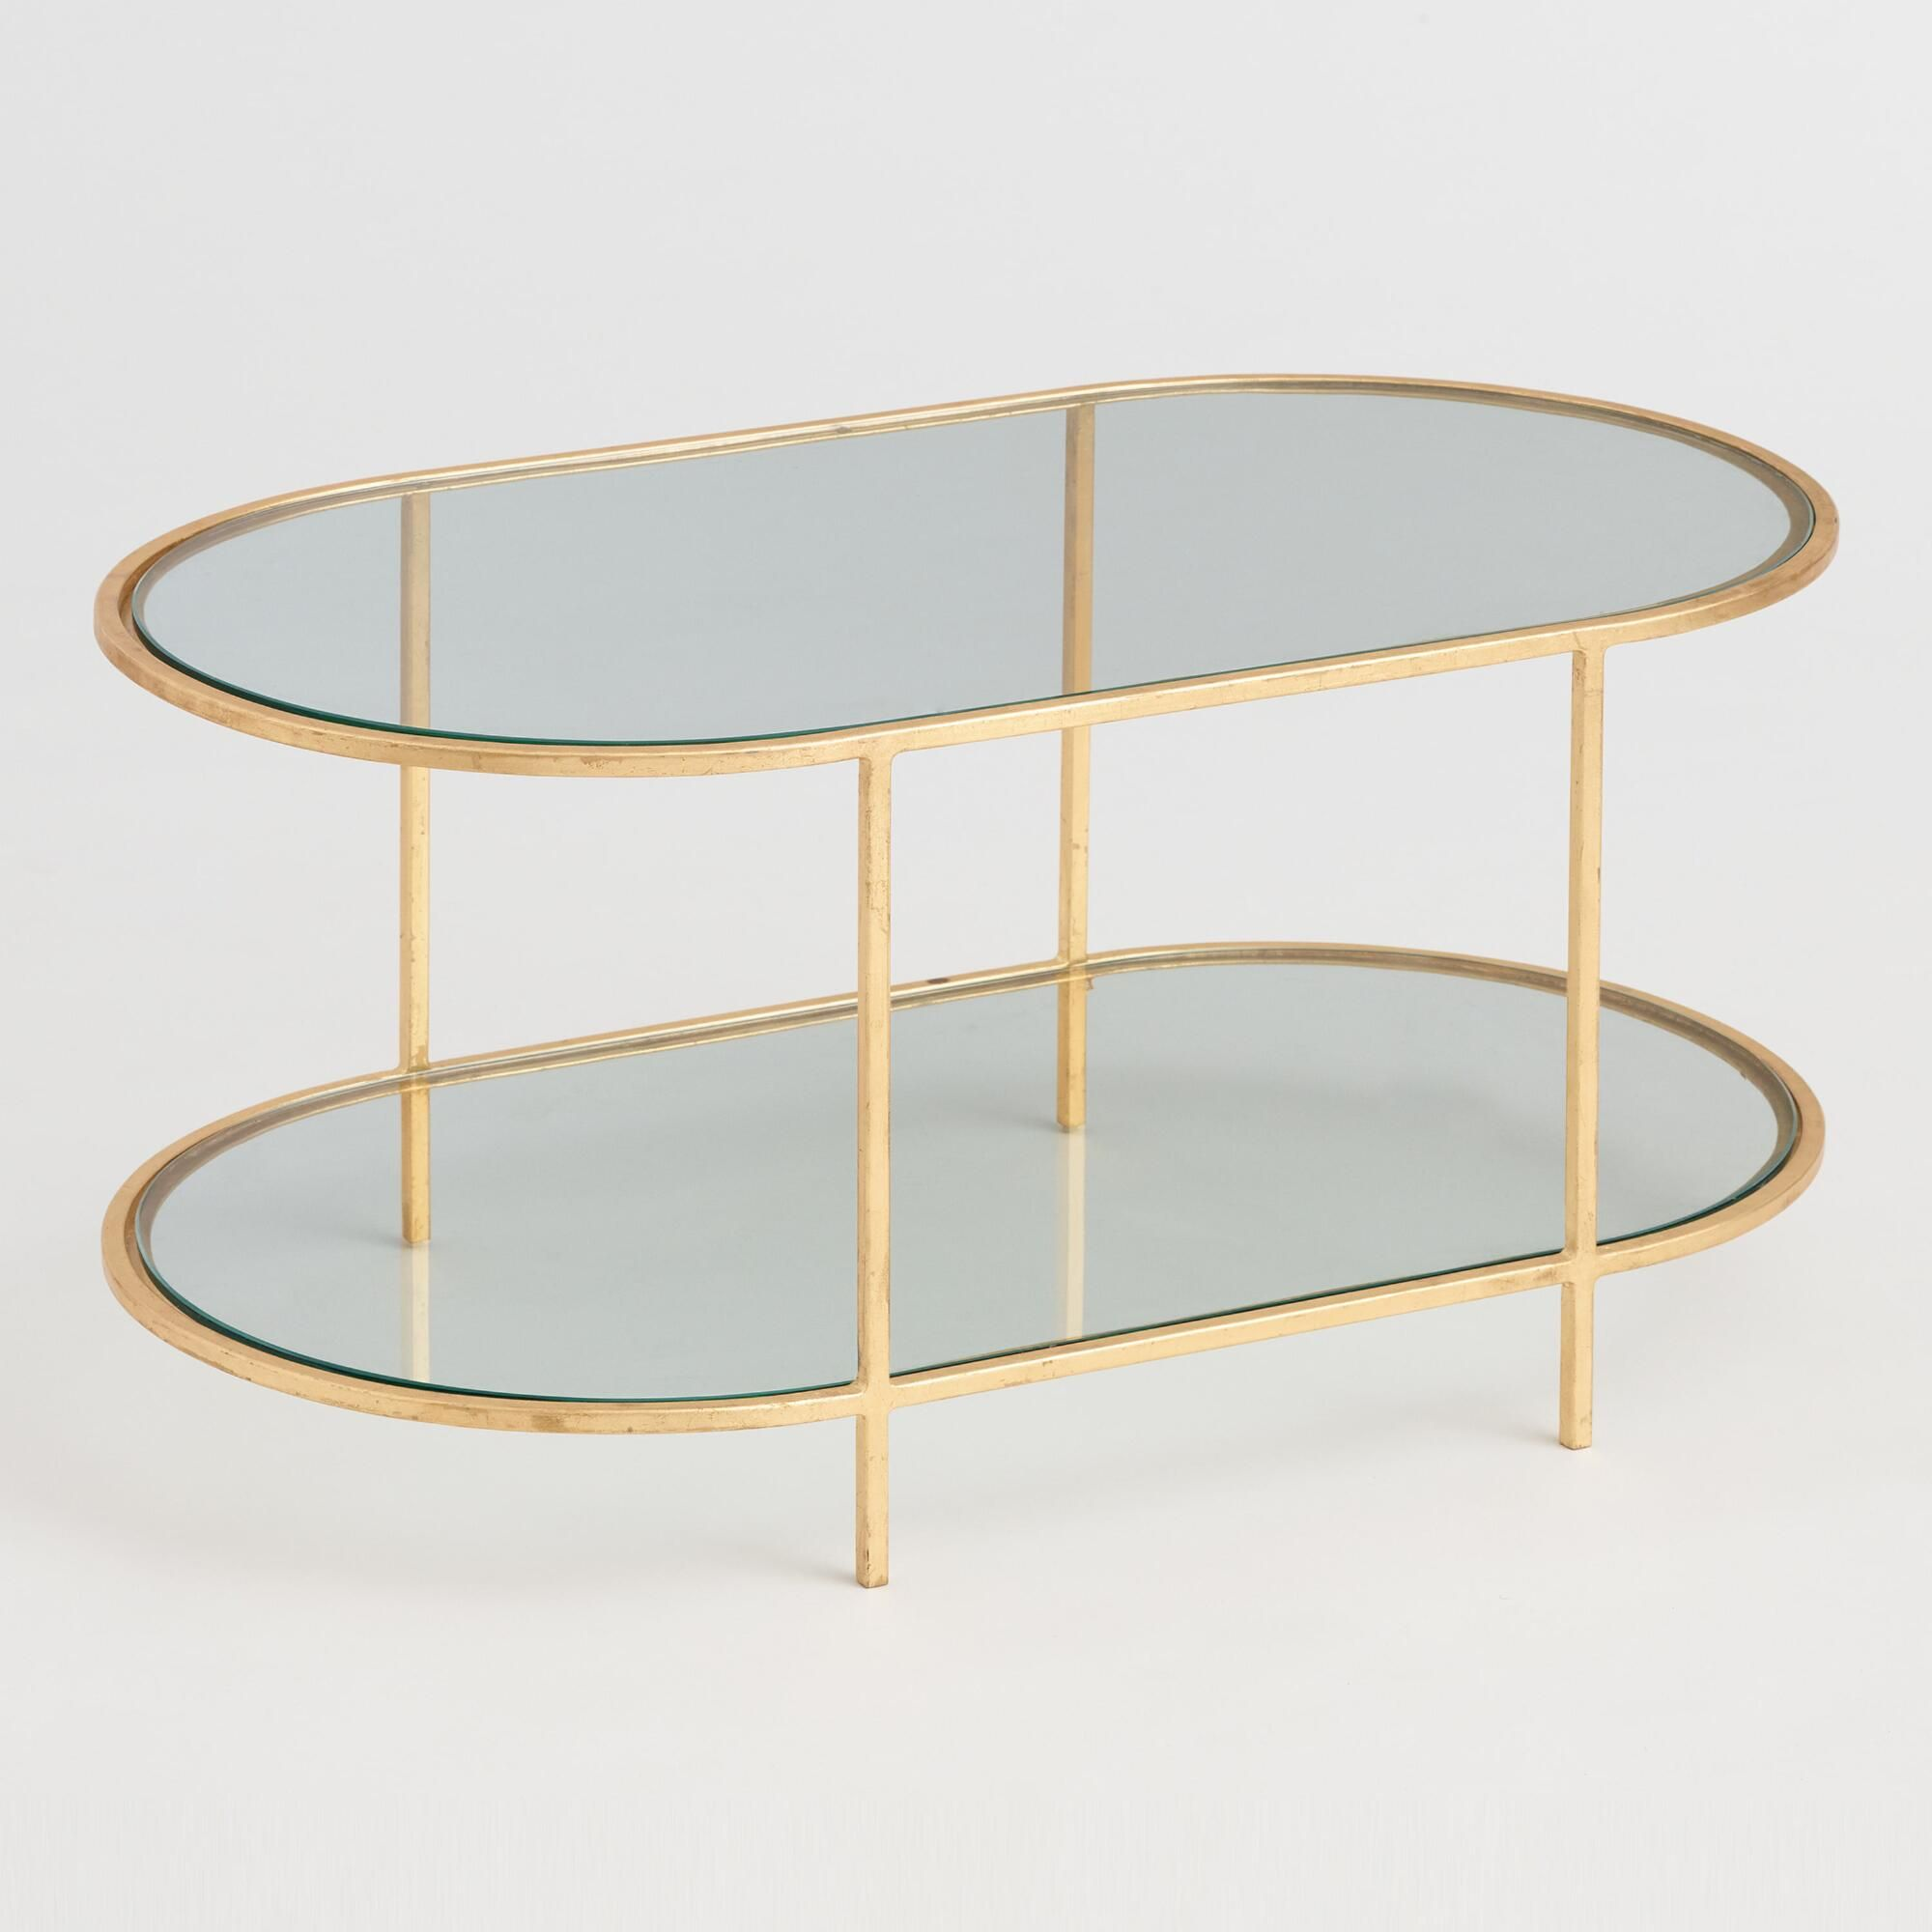 Oval Glass and Gold Leaf Rosalyn Coffee Table by World Market is part of Living Room Shelves Gold - Furniture Inspired by the beauty of goldleaf detailing, we designed our Rosalyn tables with handapplied, hammered goldtoned metal  A glass tabletop and low shelf give this coffee table luxe looks and extra storage, making it a modern musthave  Material , Color  Also could be used forcoffee table,table,side table,cocktail table,accent table,occasional table,ottoman,console table,home decor,family room furniture,home furnishings  By Cost Plus World Market 565766